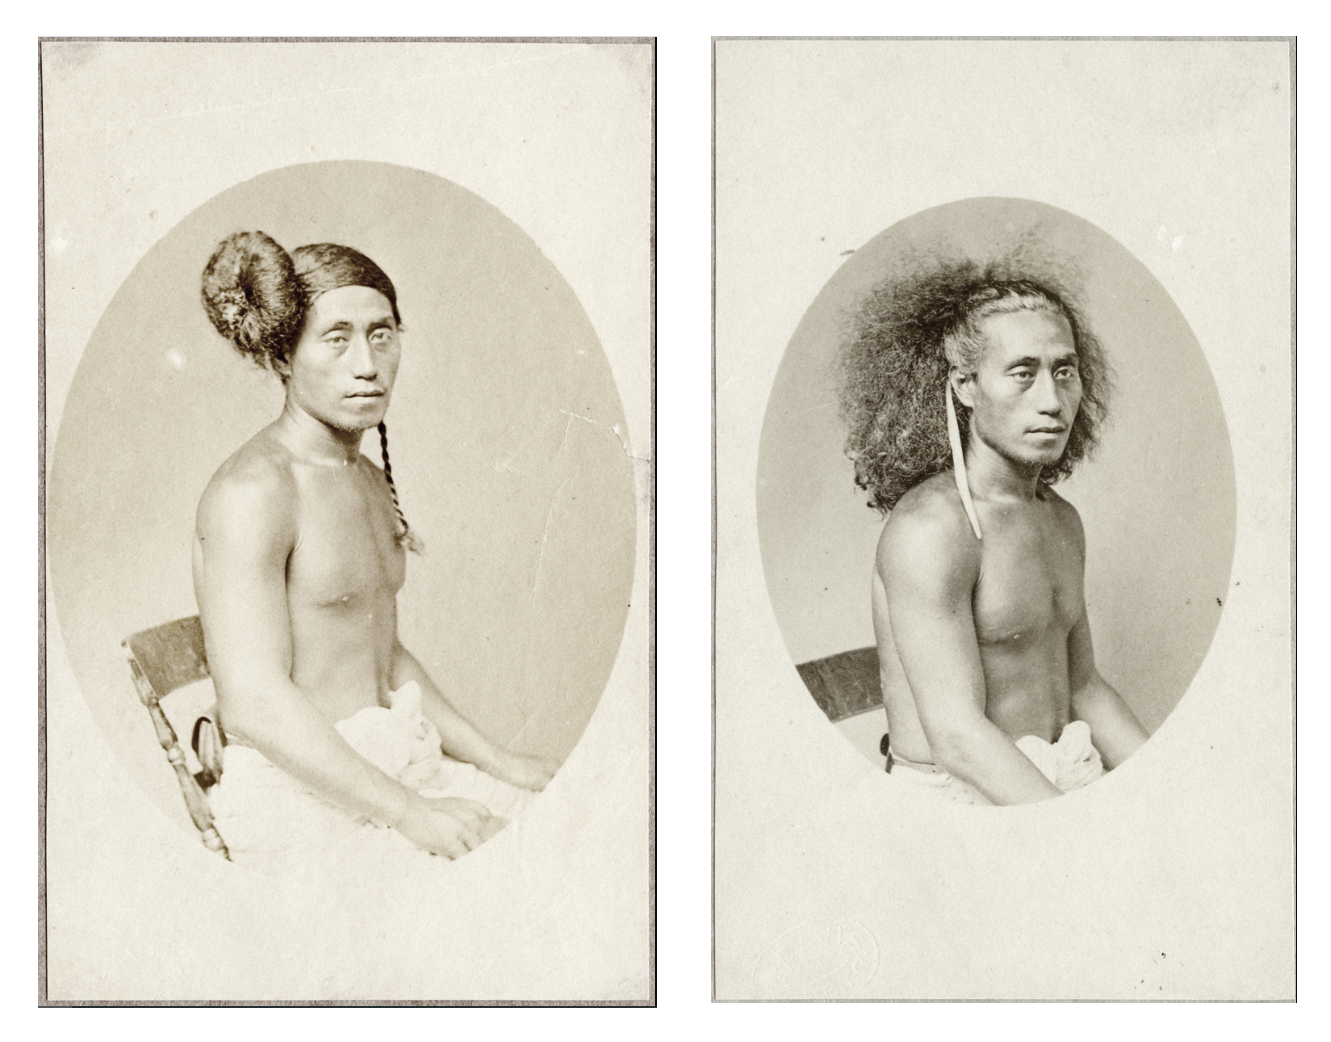 pair of black and white photographs showing a Samoan person posed with hair up and down